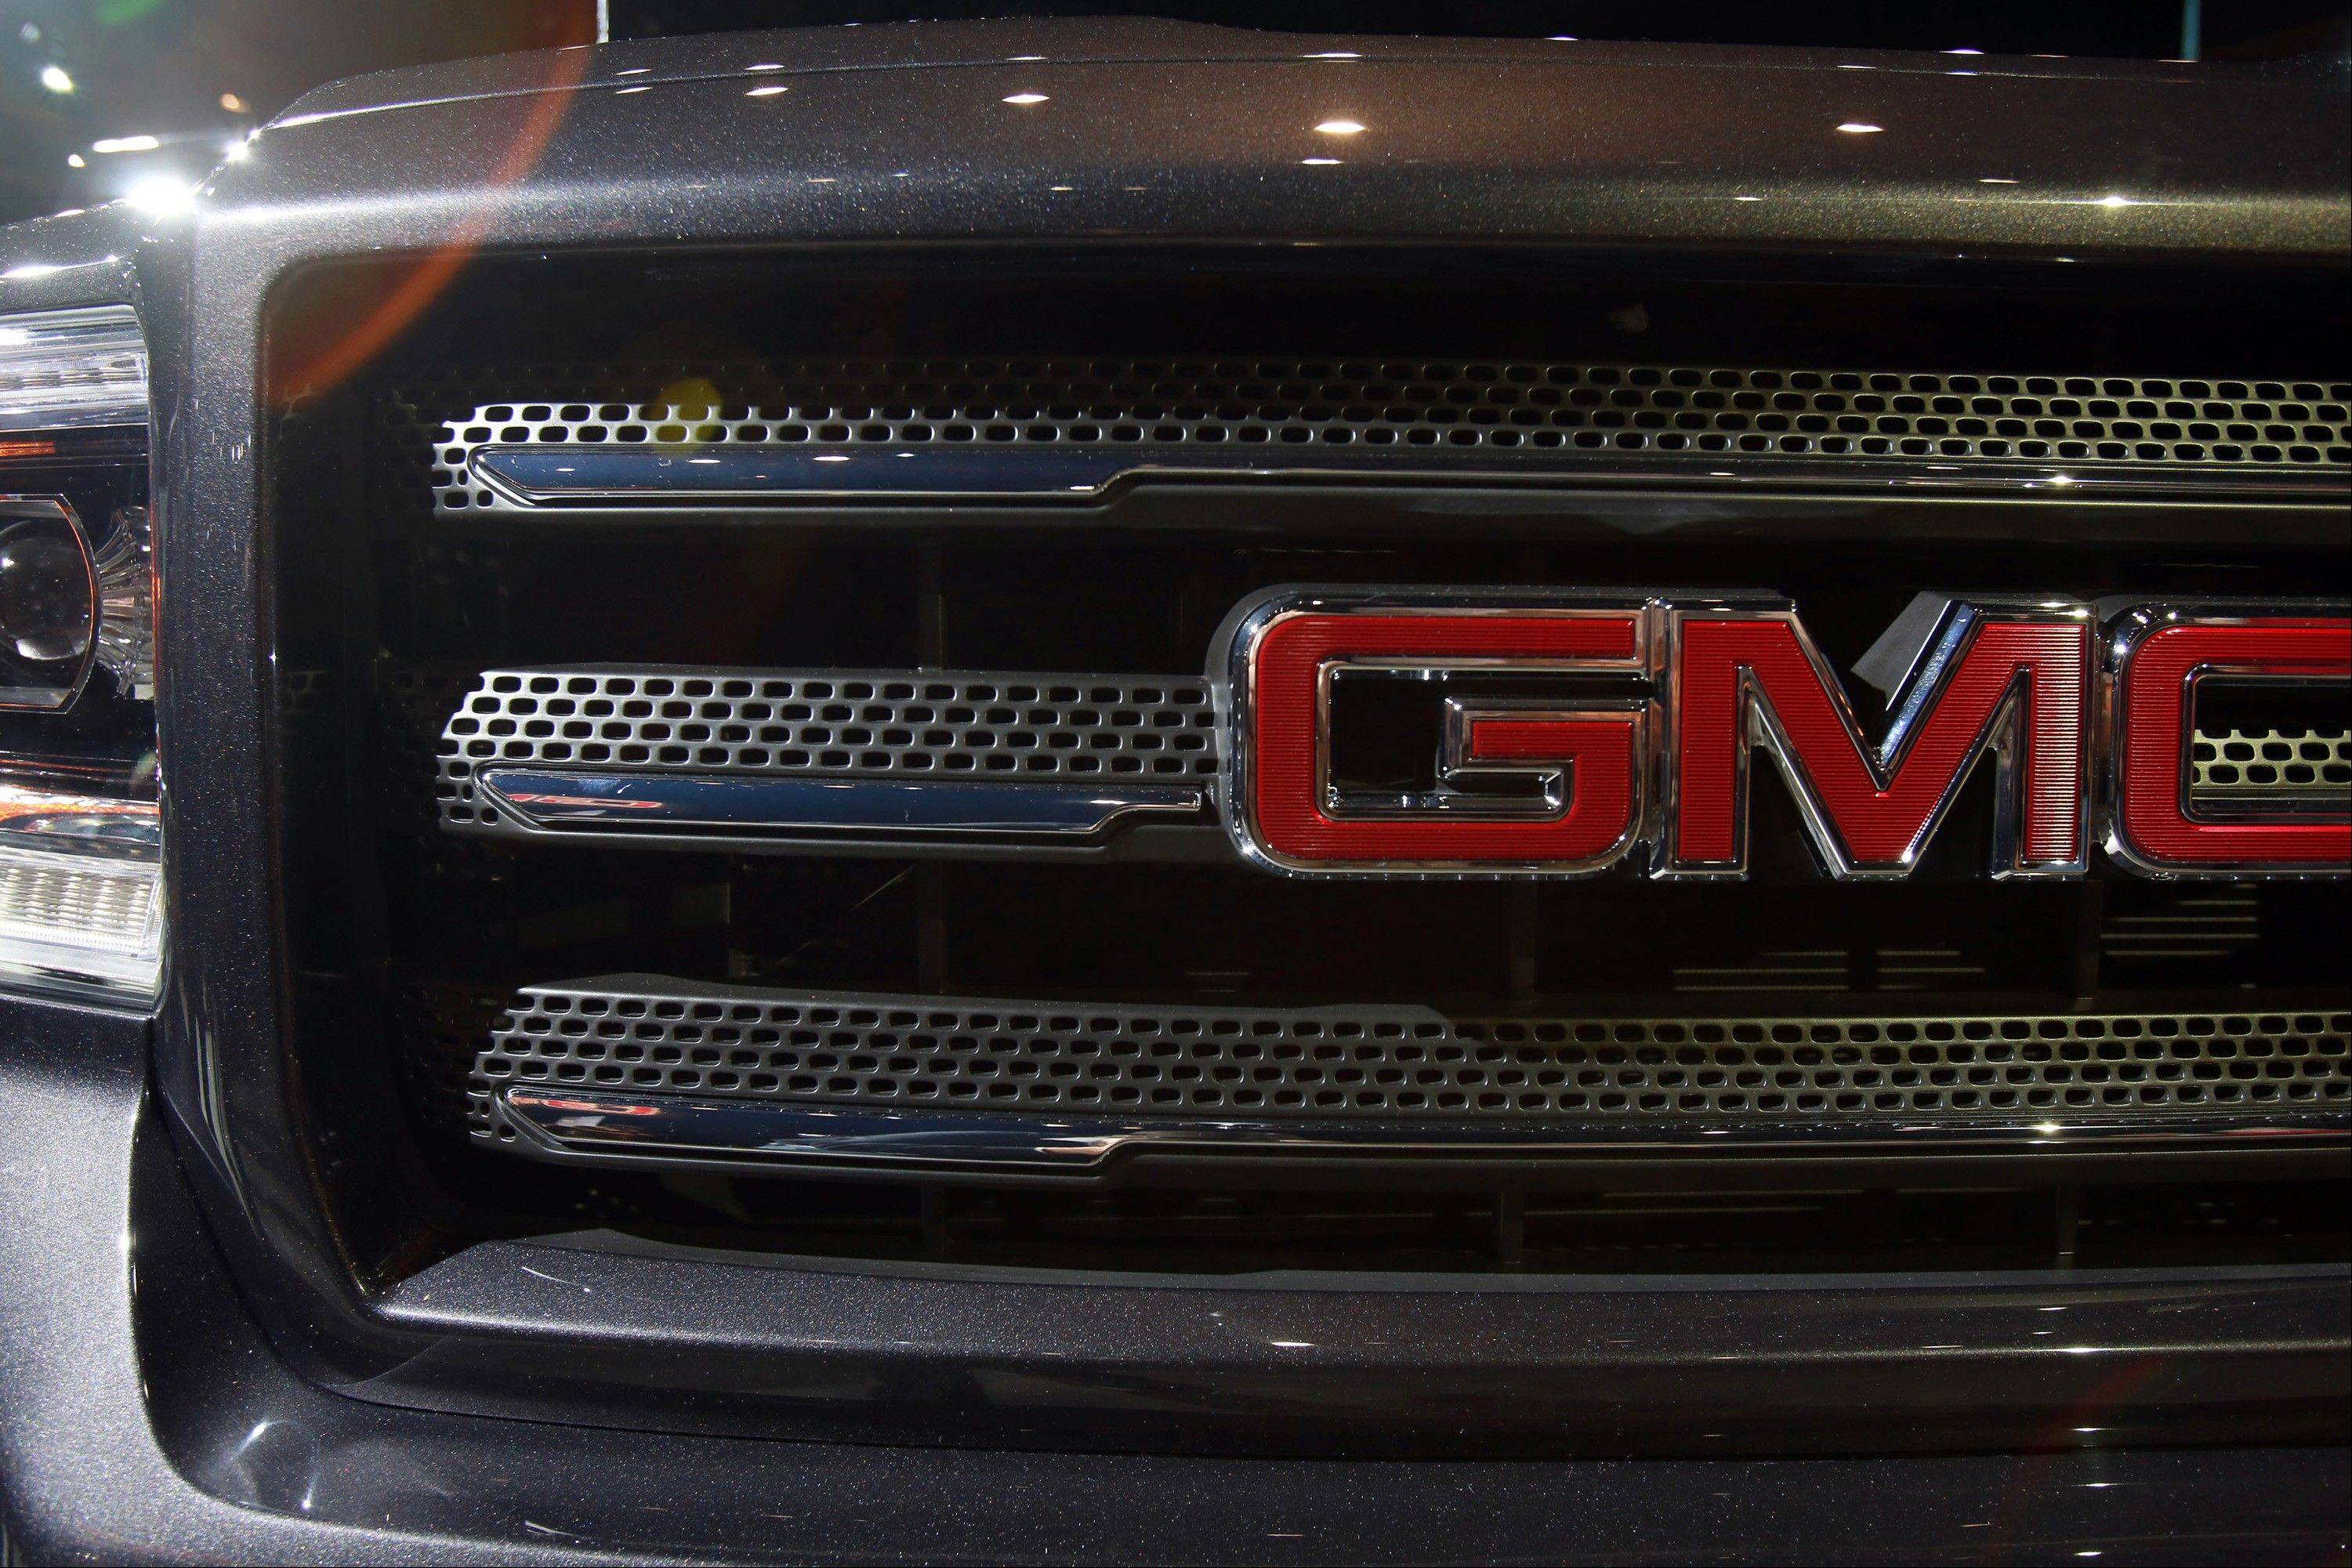 The Treasury plans to sell its remaining stake in General Motors over the next 15 months, allowing the automaker to shed the stigma of being partly owned by the U.S. government.